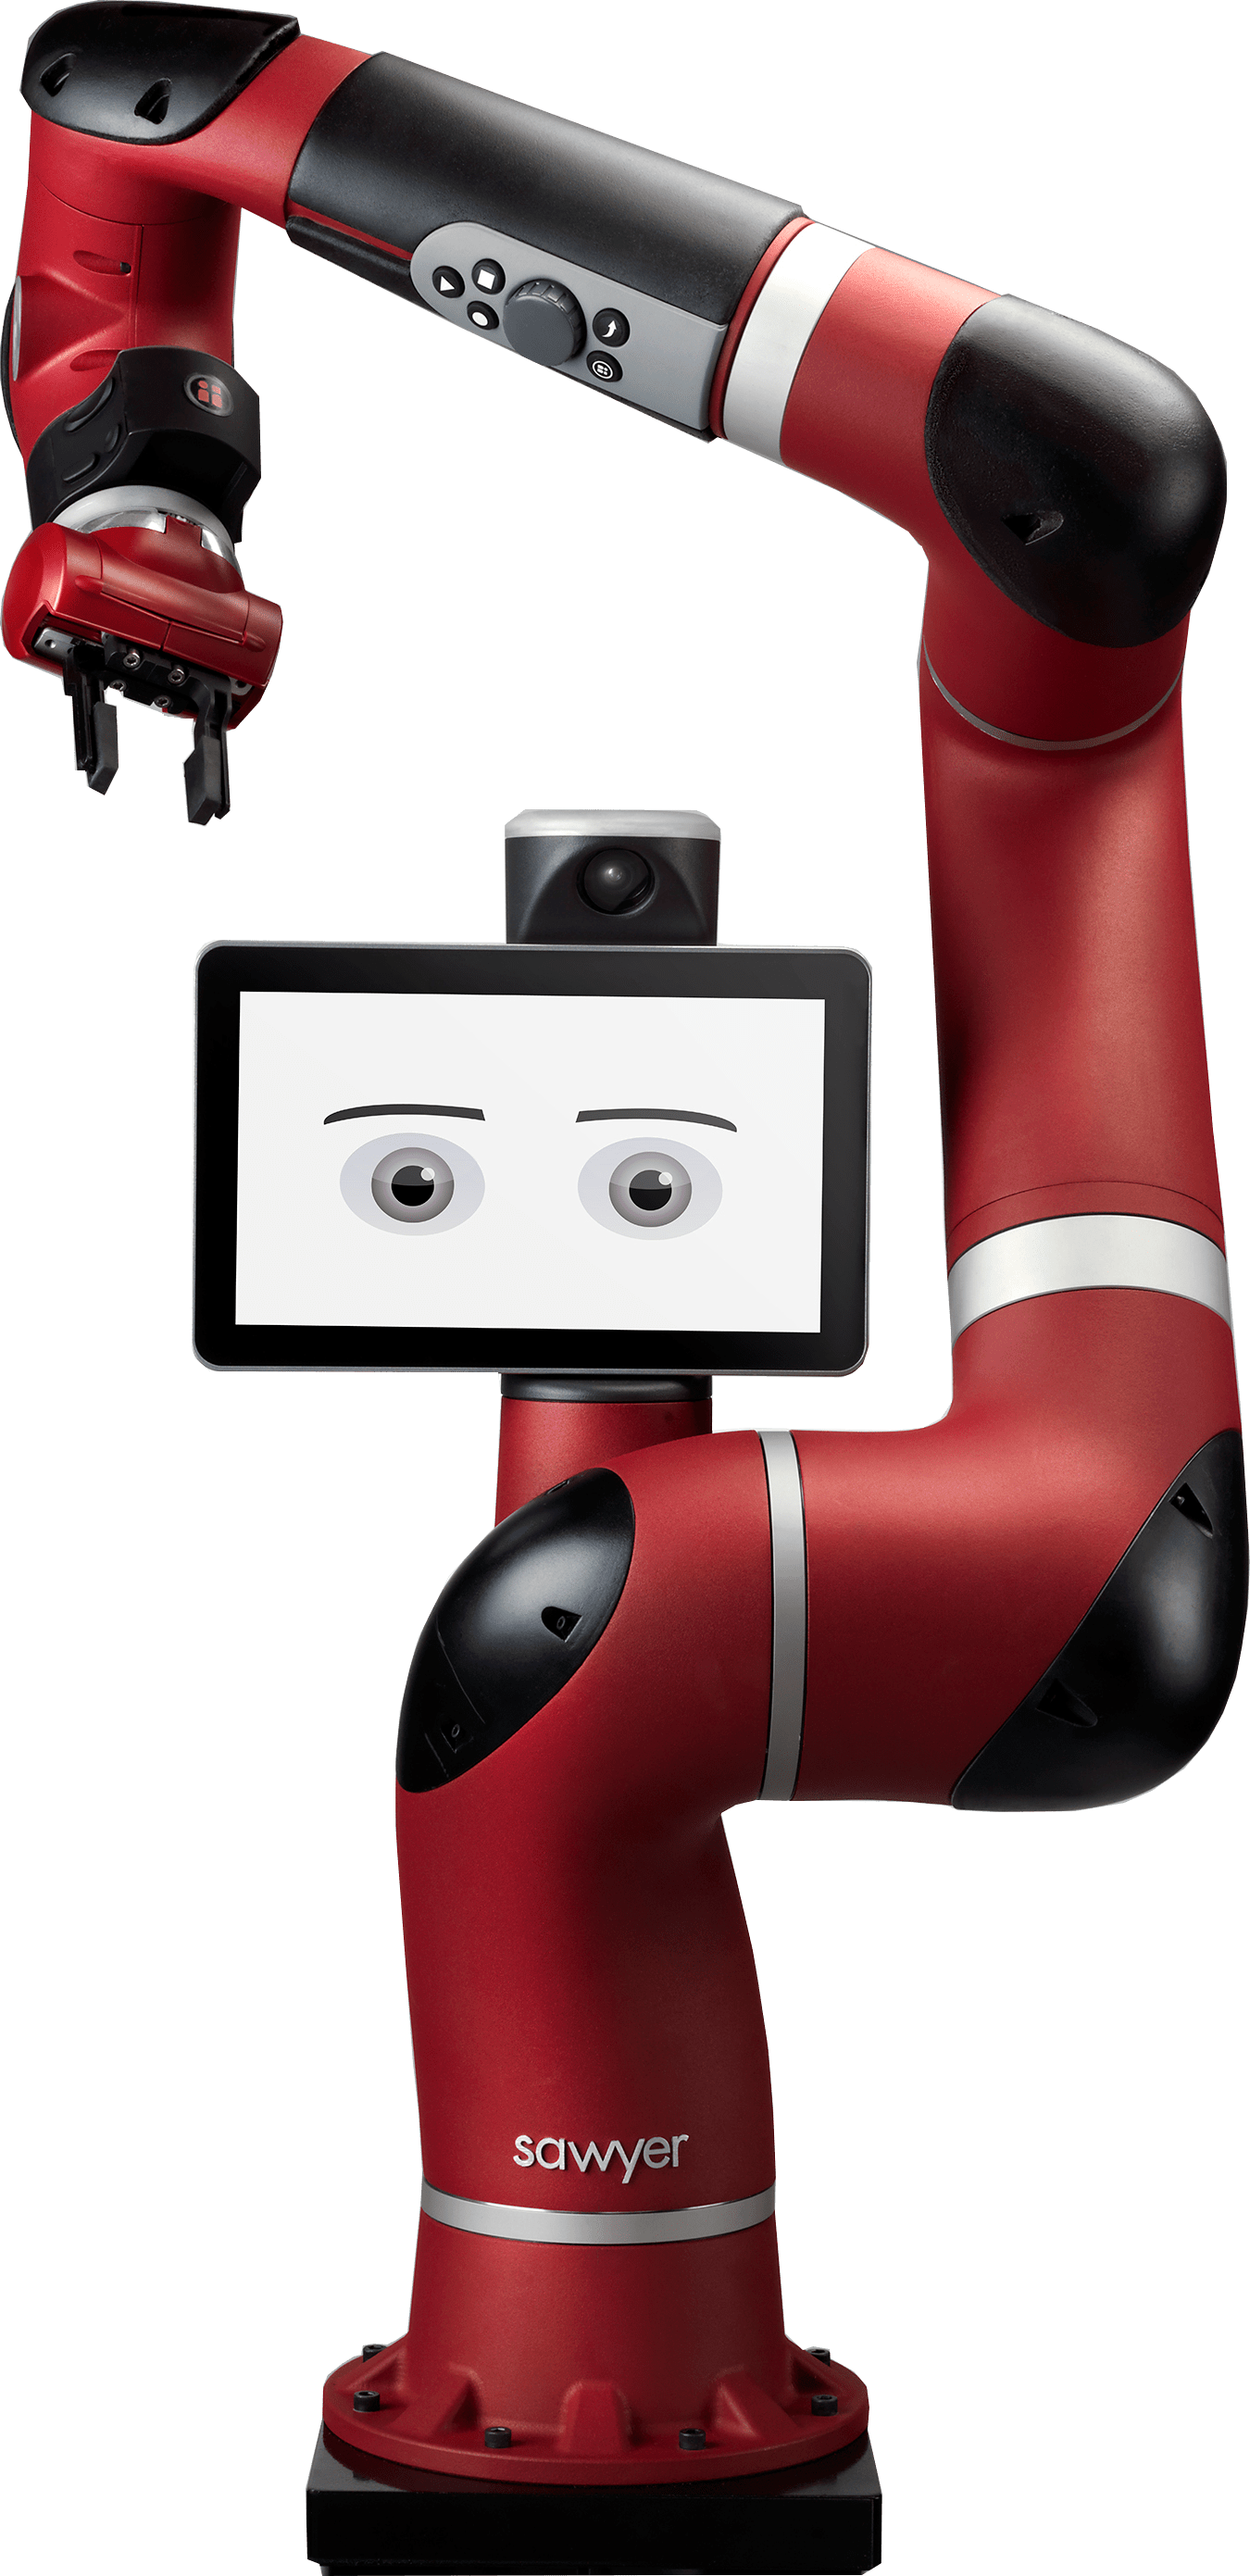 Le cobot Sawyer de Rethink Robotics